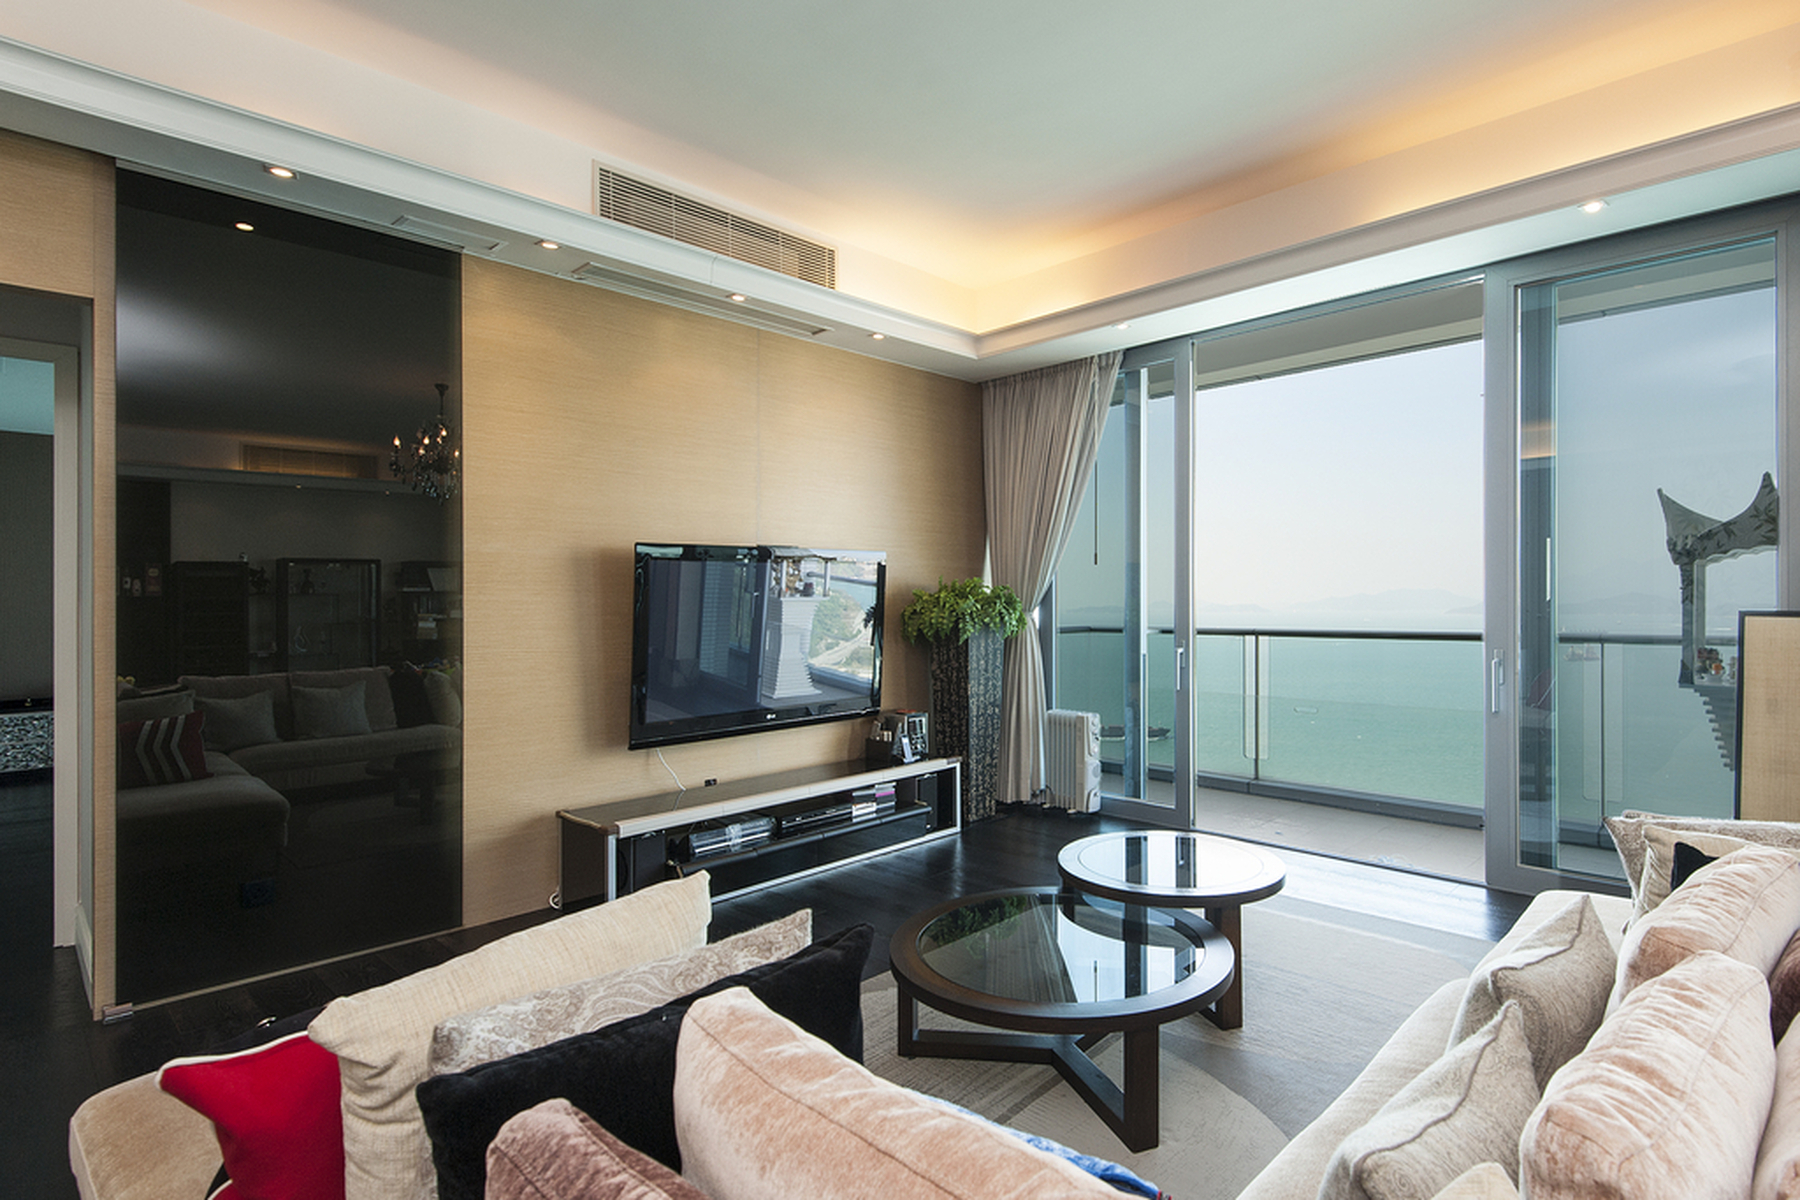 Apartamento para Venda às Residence Bel-air - Phase 02, South Tower 08 Pokfulam, Hong Kong, Hong Kong